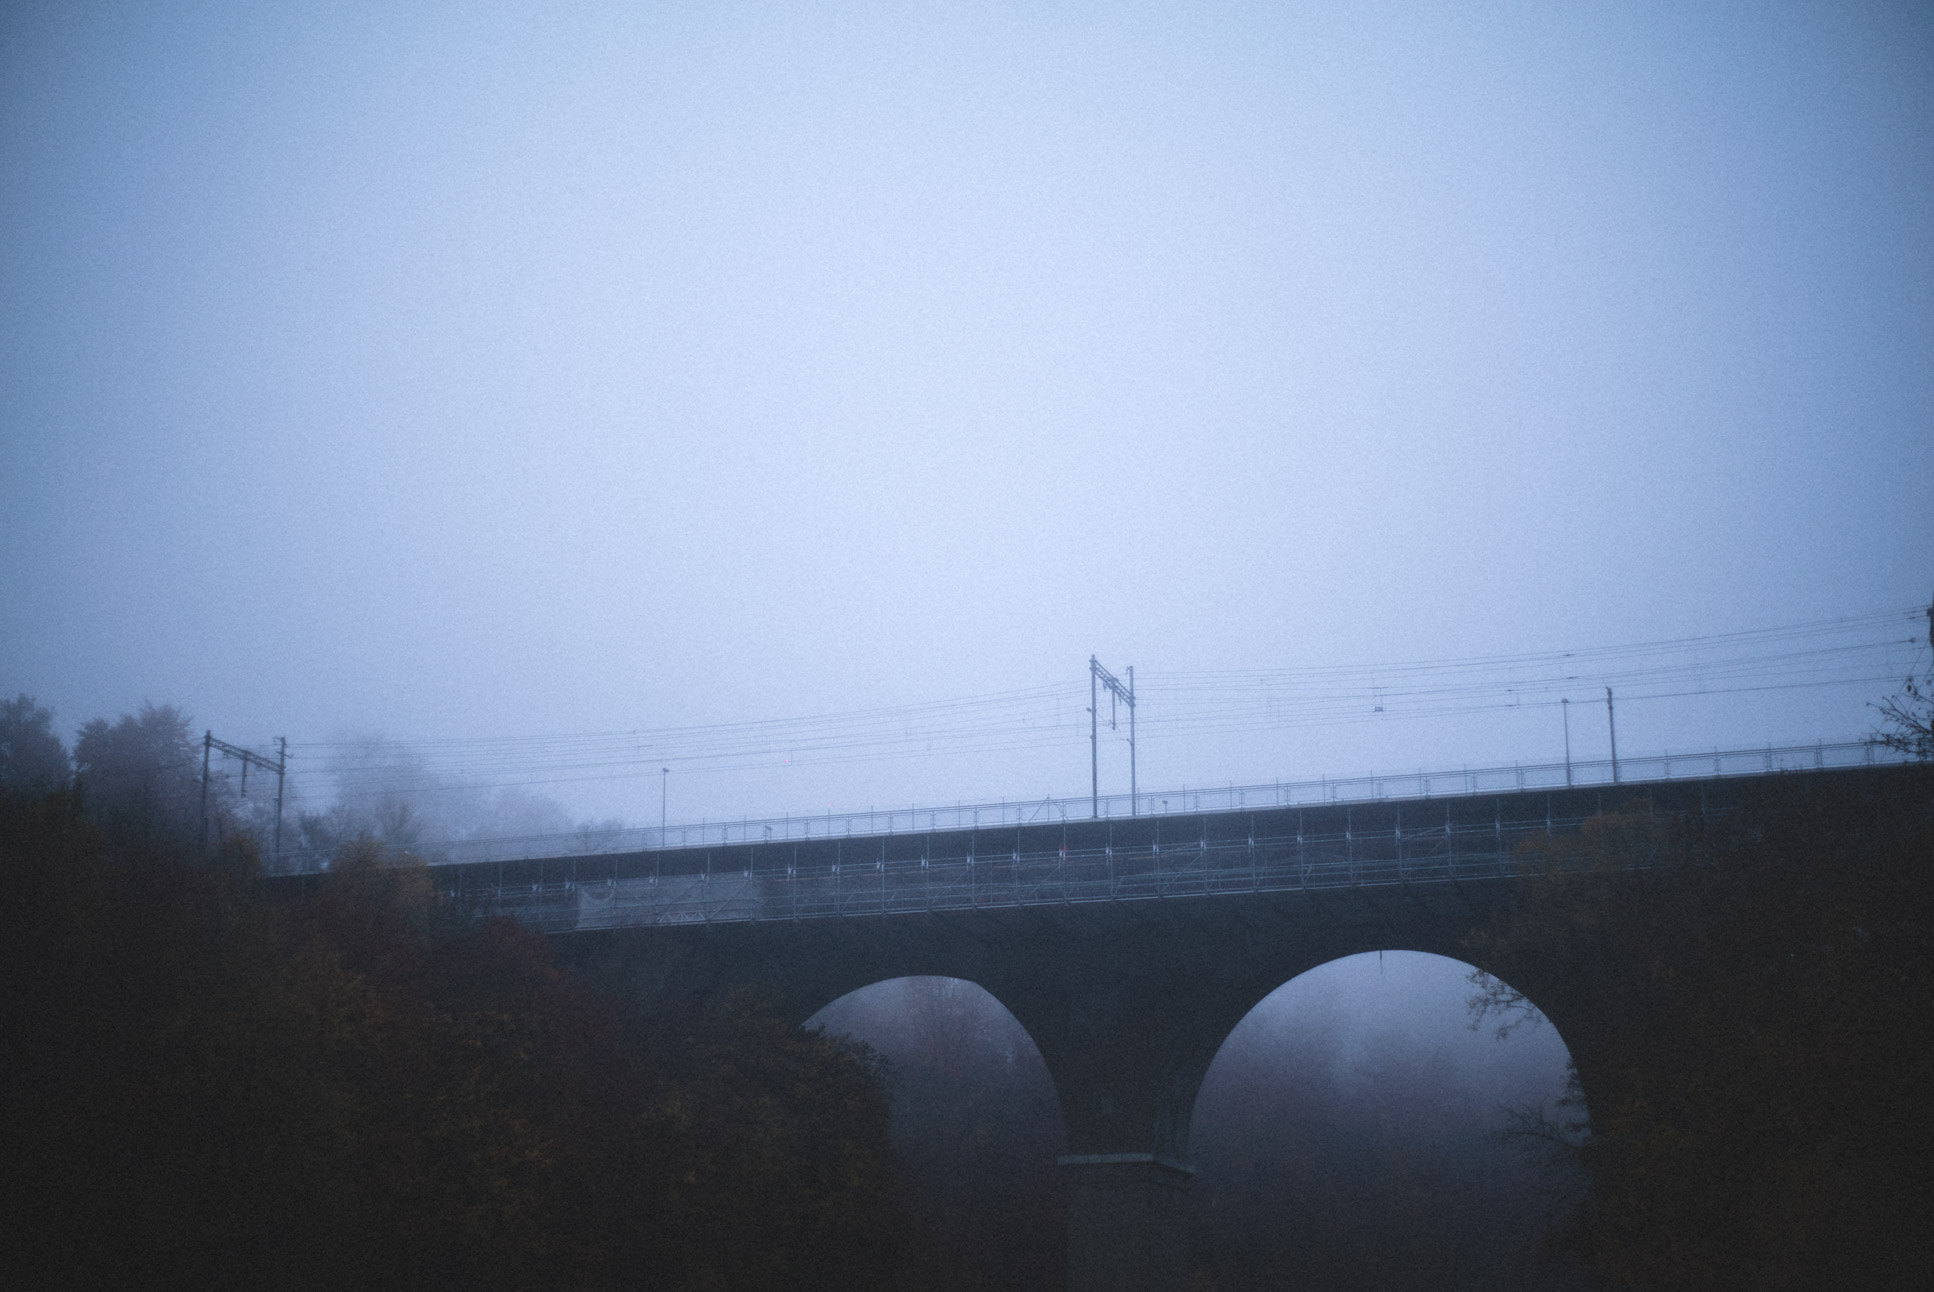 this bridge was in fact built to support the fog aesthetic, along with the train tracks